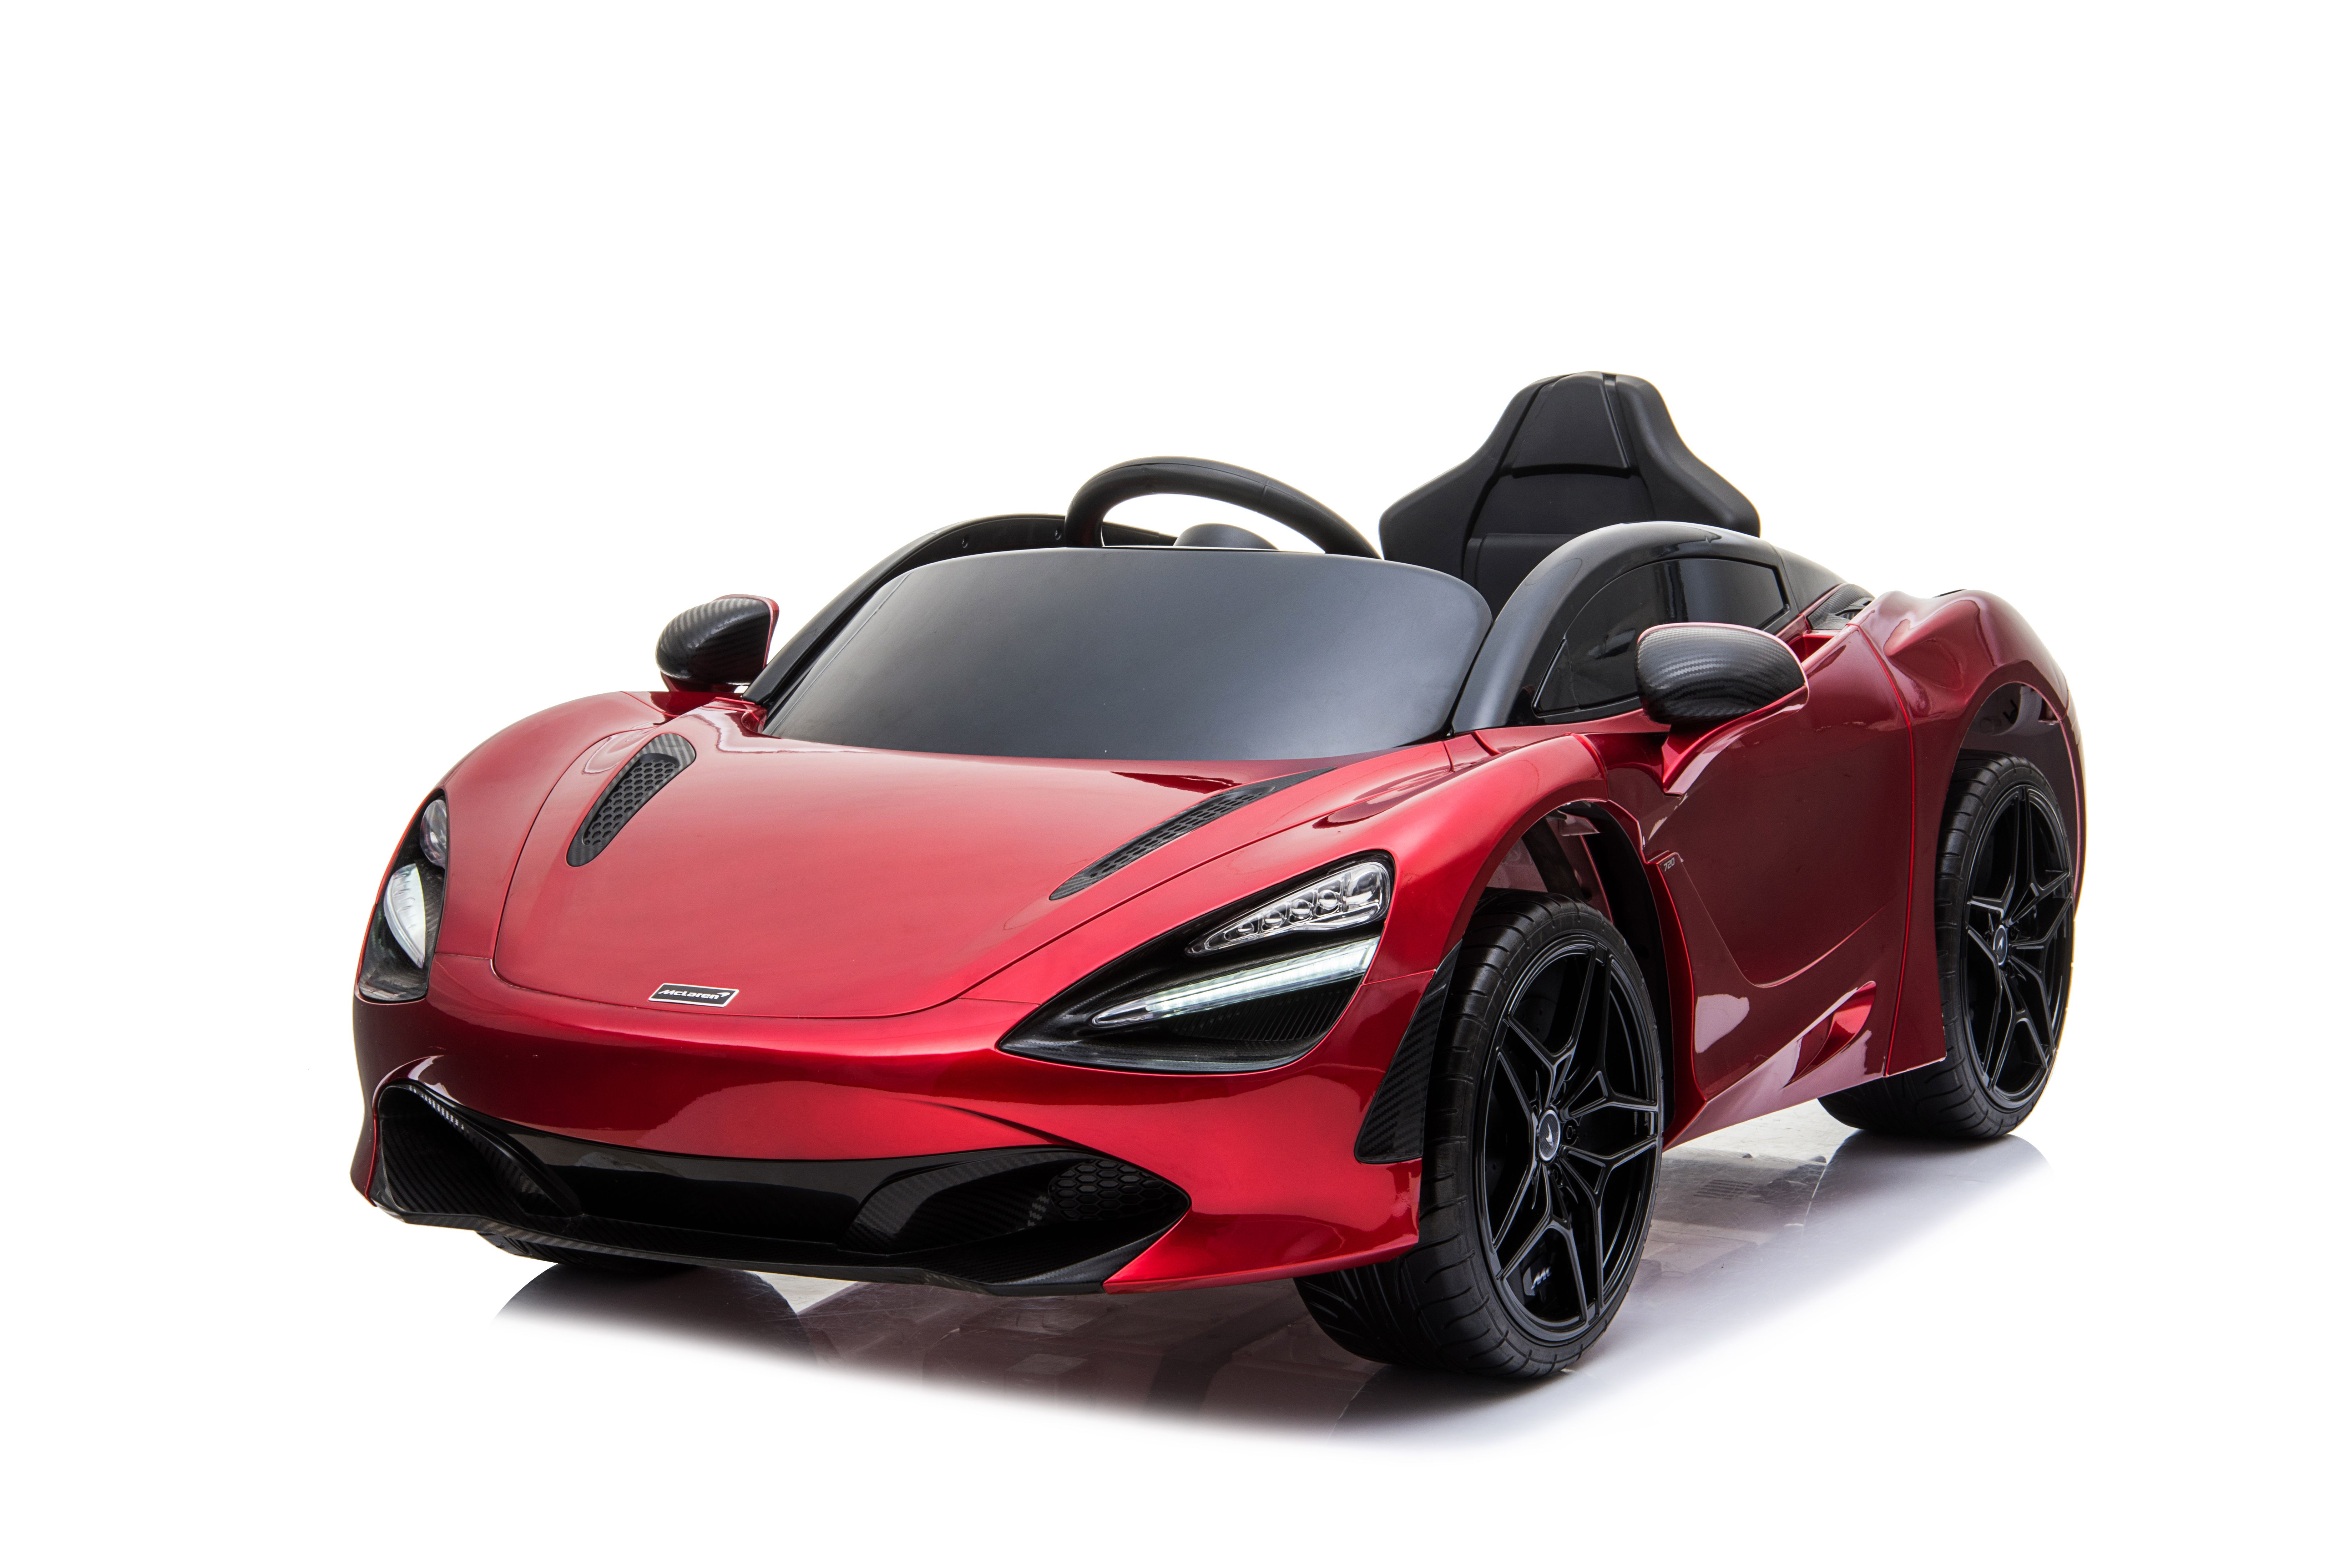 Mclaren 720s Cars For Kids Electric Ride On Cars Kids Vip Leather Seat Mclaren Car